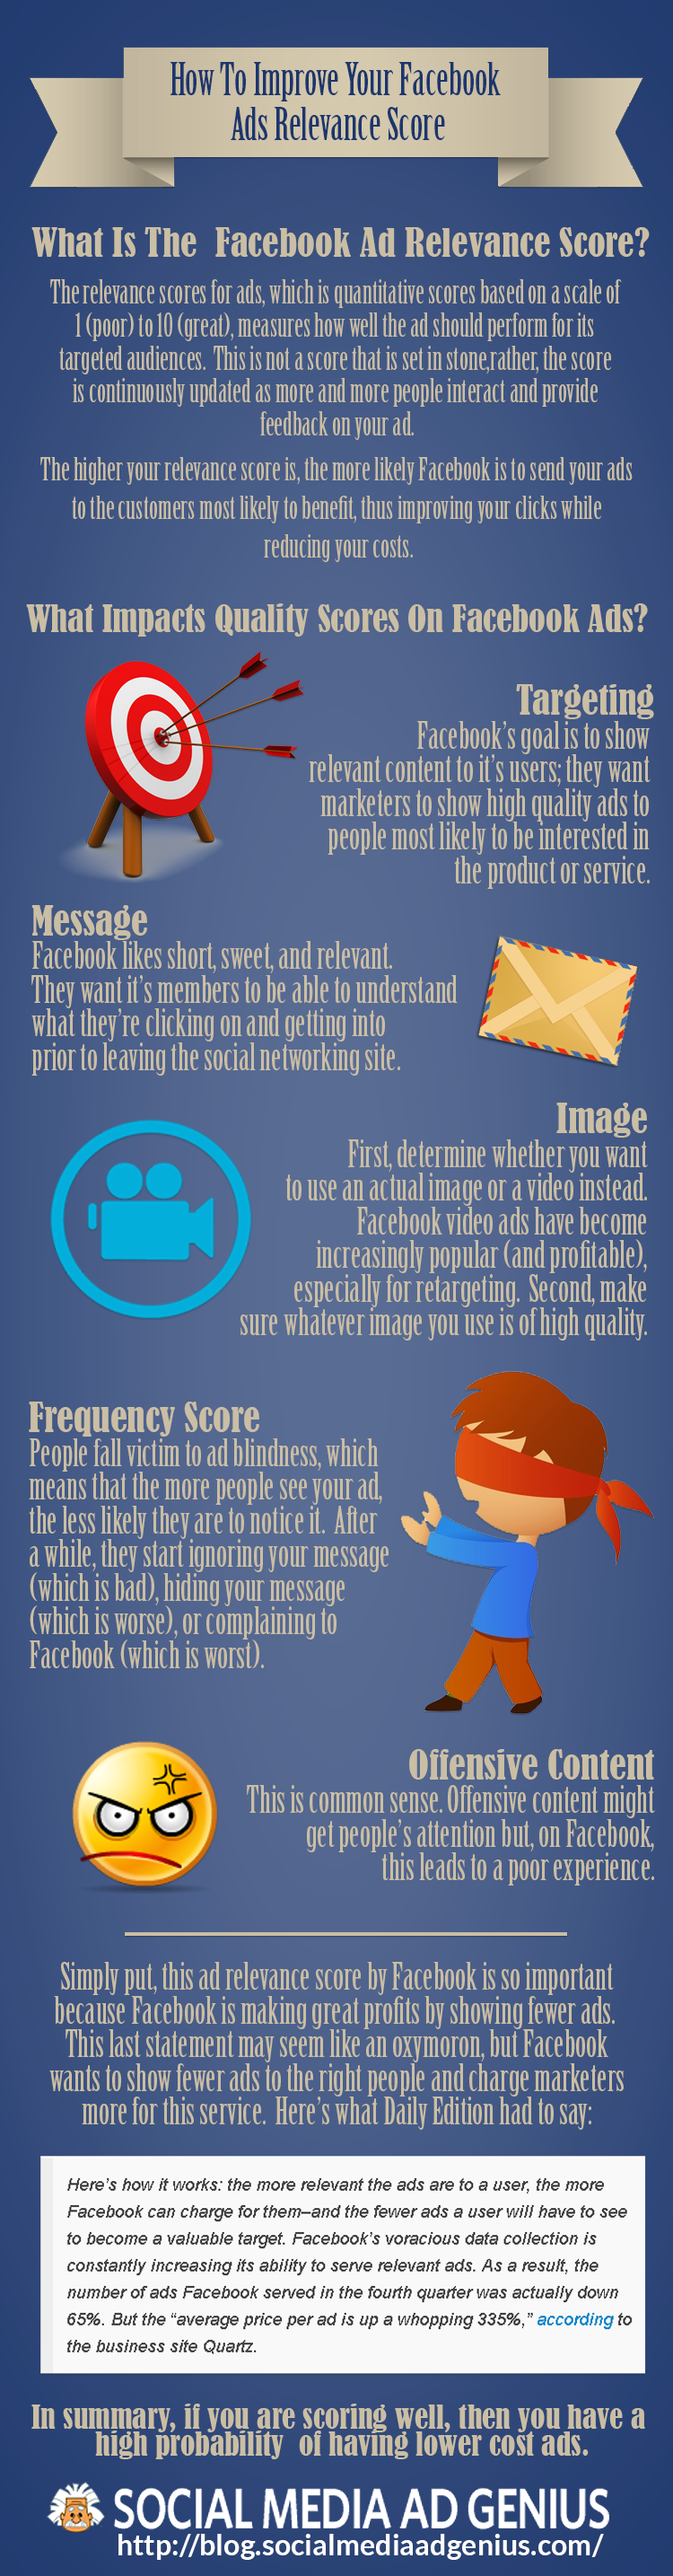 How To Improve Your Facebook Ads Relevance Score - Infographic